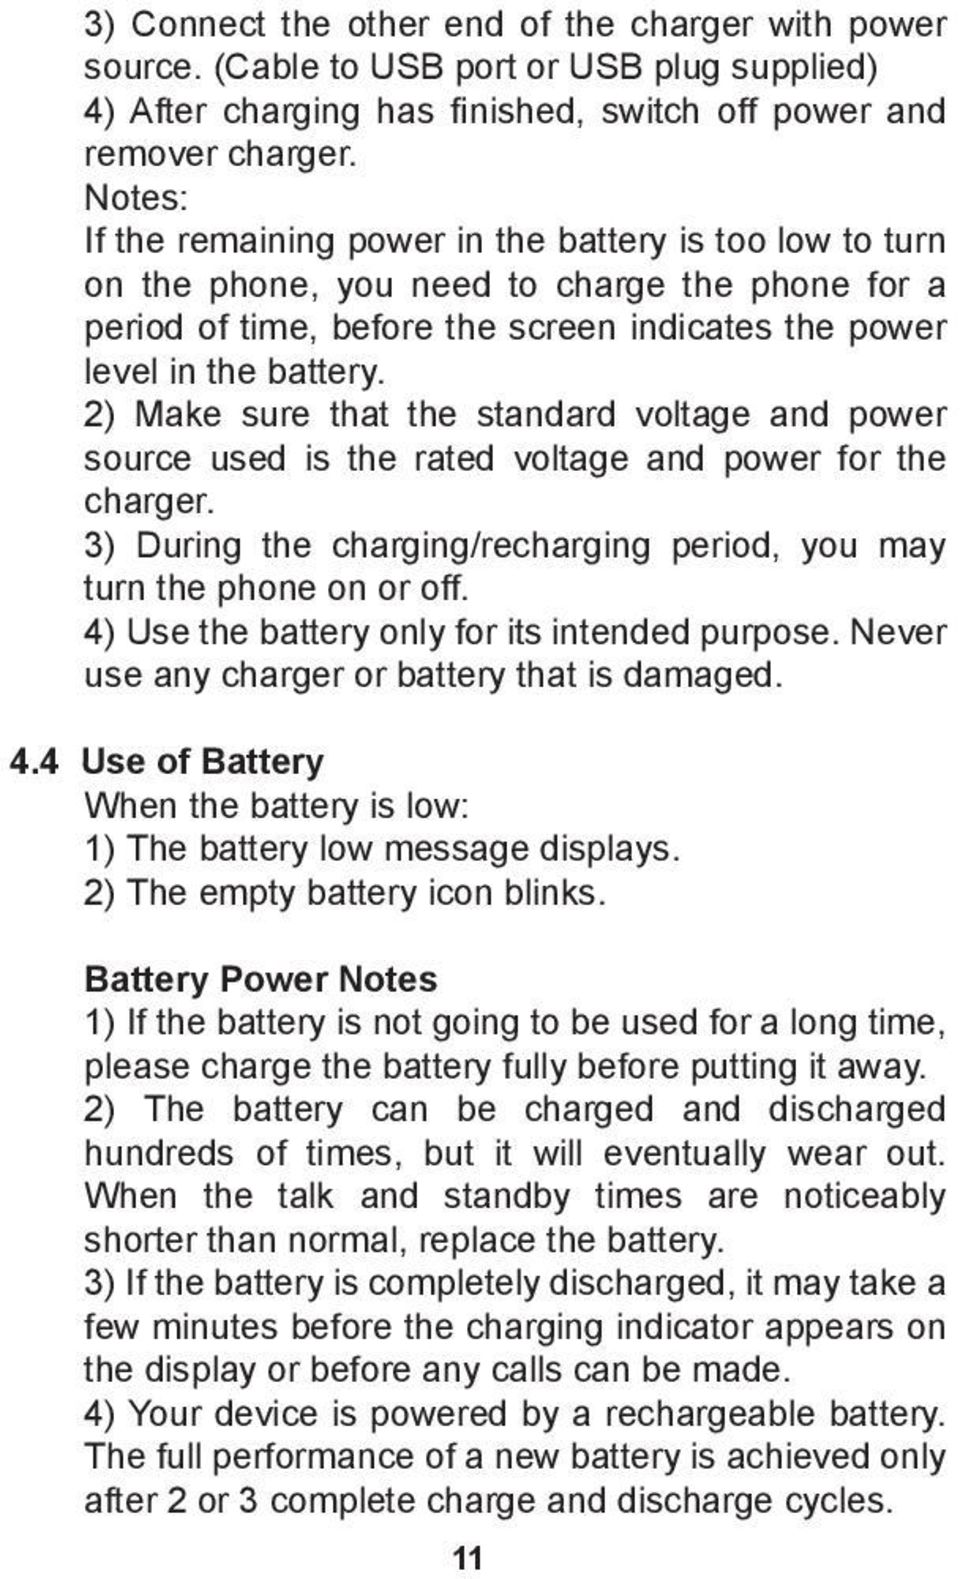 2) Make sure that the standard voltage and power source used is the rated voltage and power for the charger. 3) During the charging/recharging period, you may turn the phone on or off.